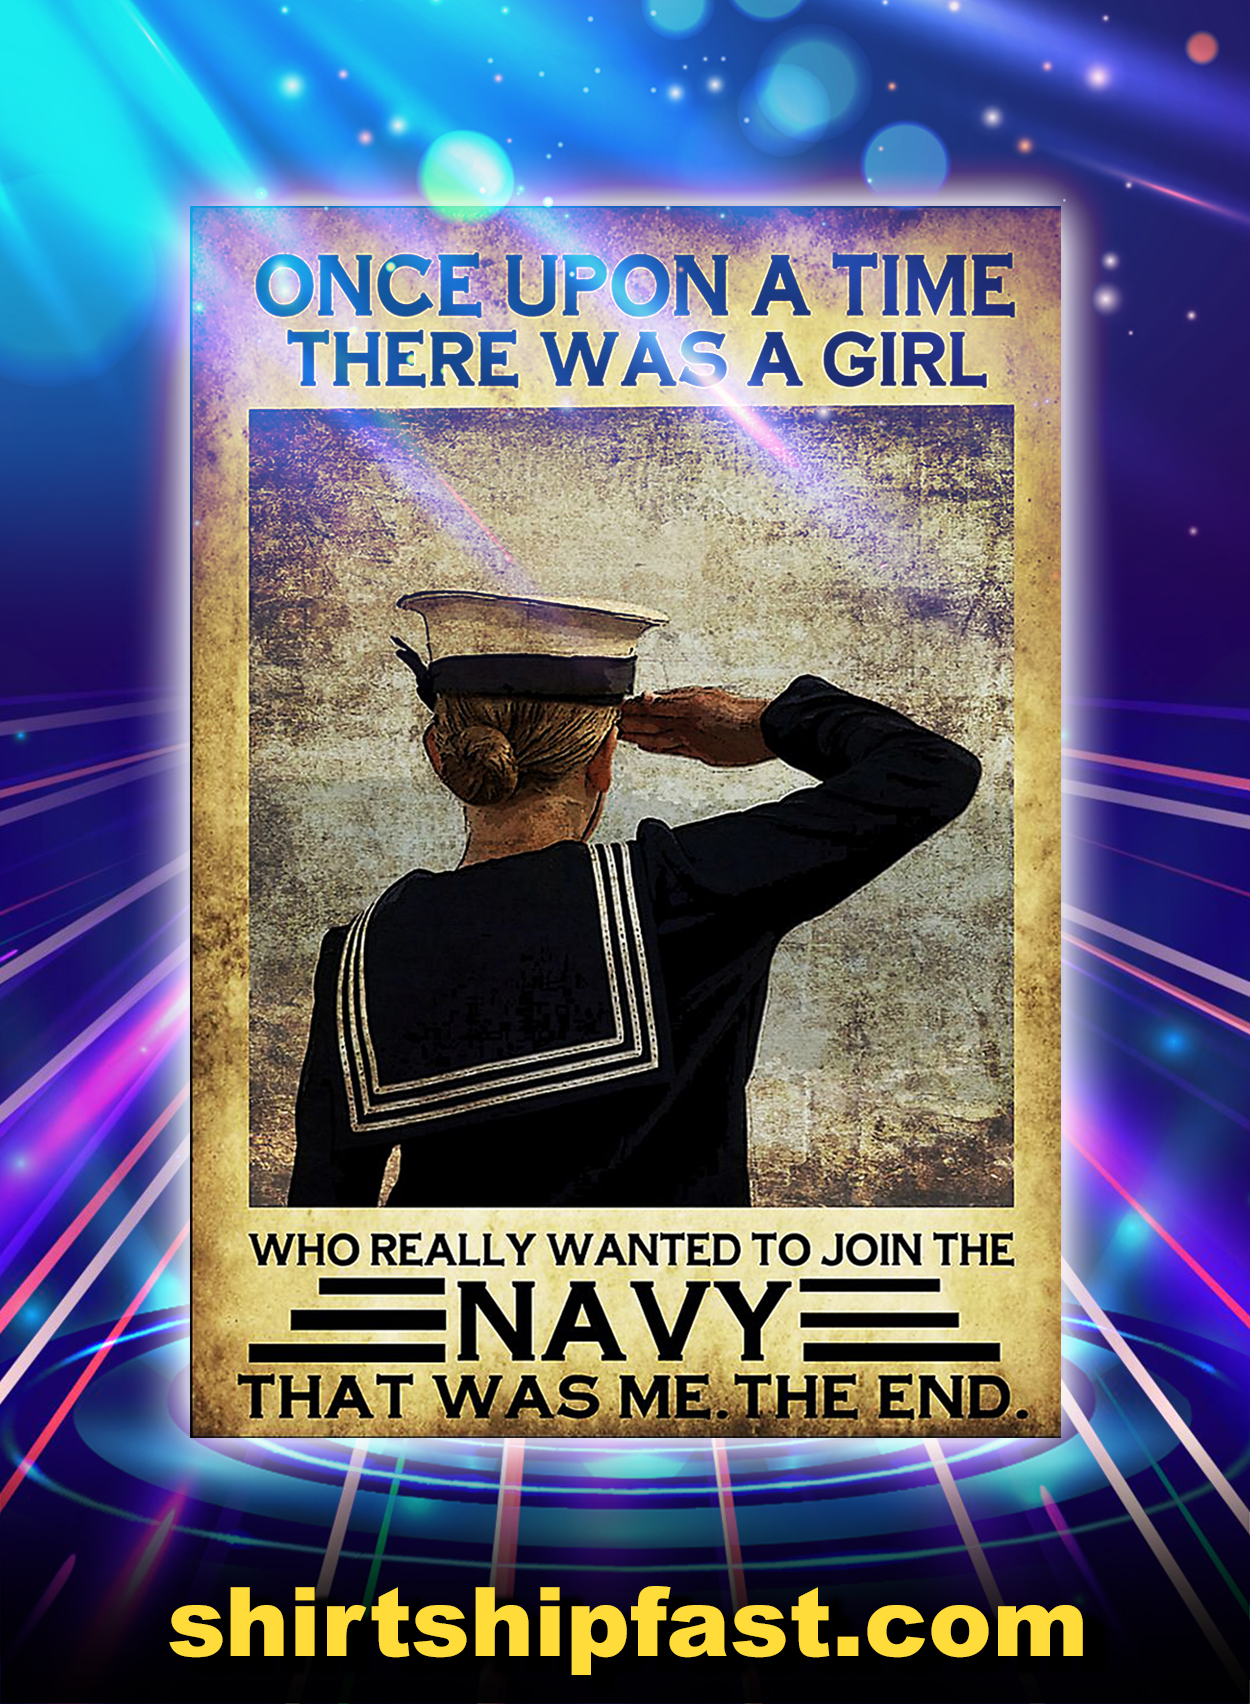 Once upon a time there was a girl who really wanted to join the navy poster - A2